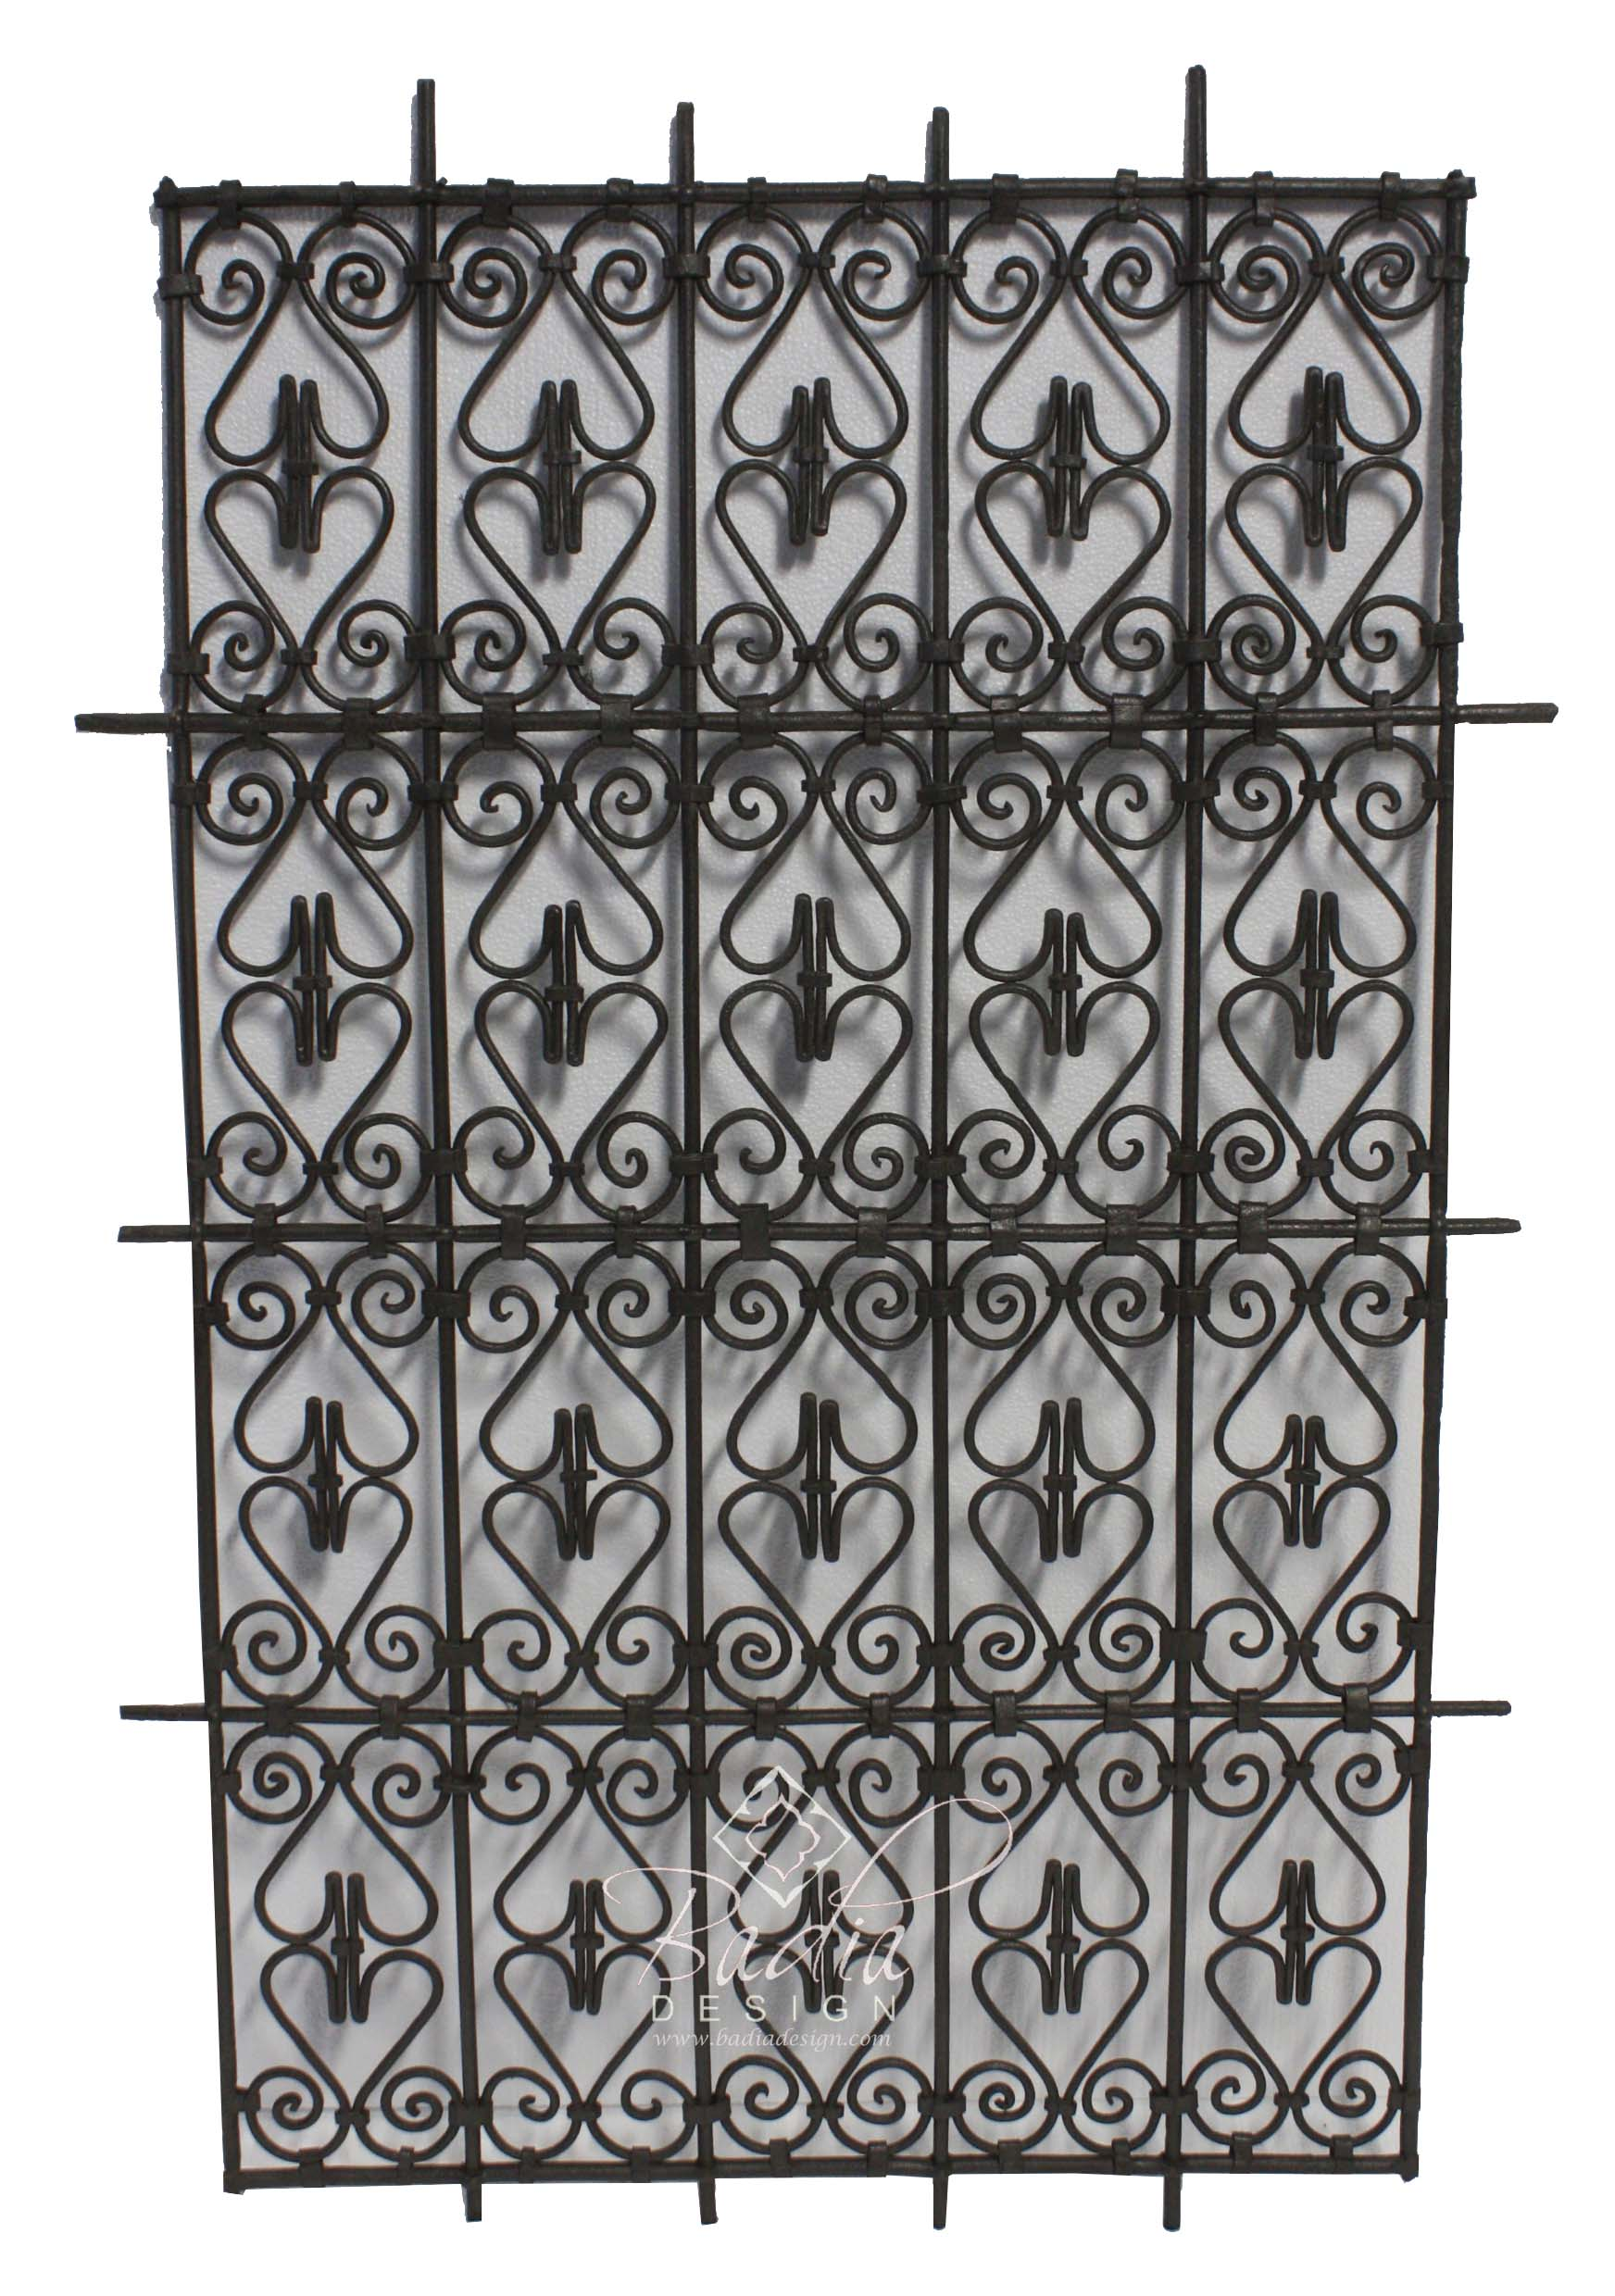 moroccan-rectangular-shaped-wrought-iron-panel-ip022.jpg